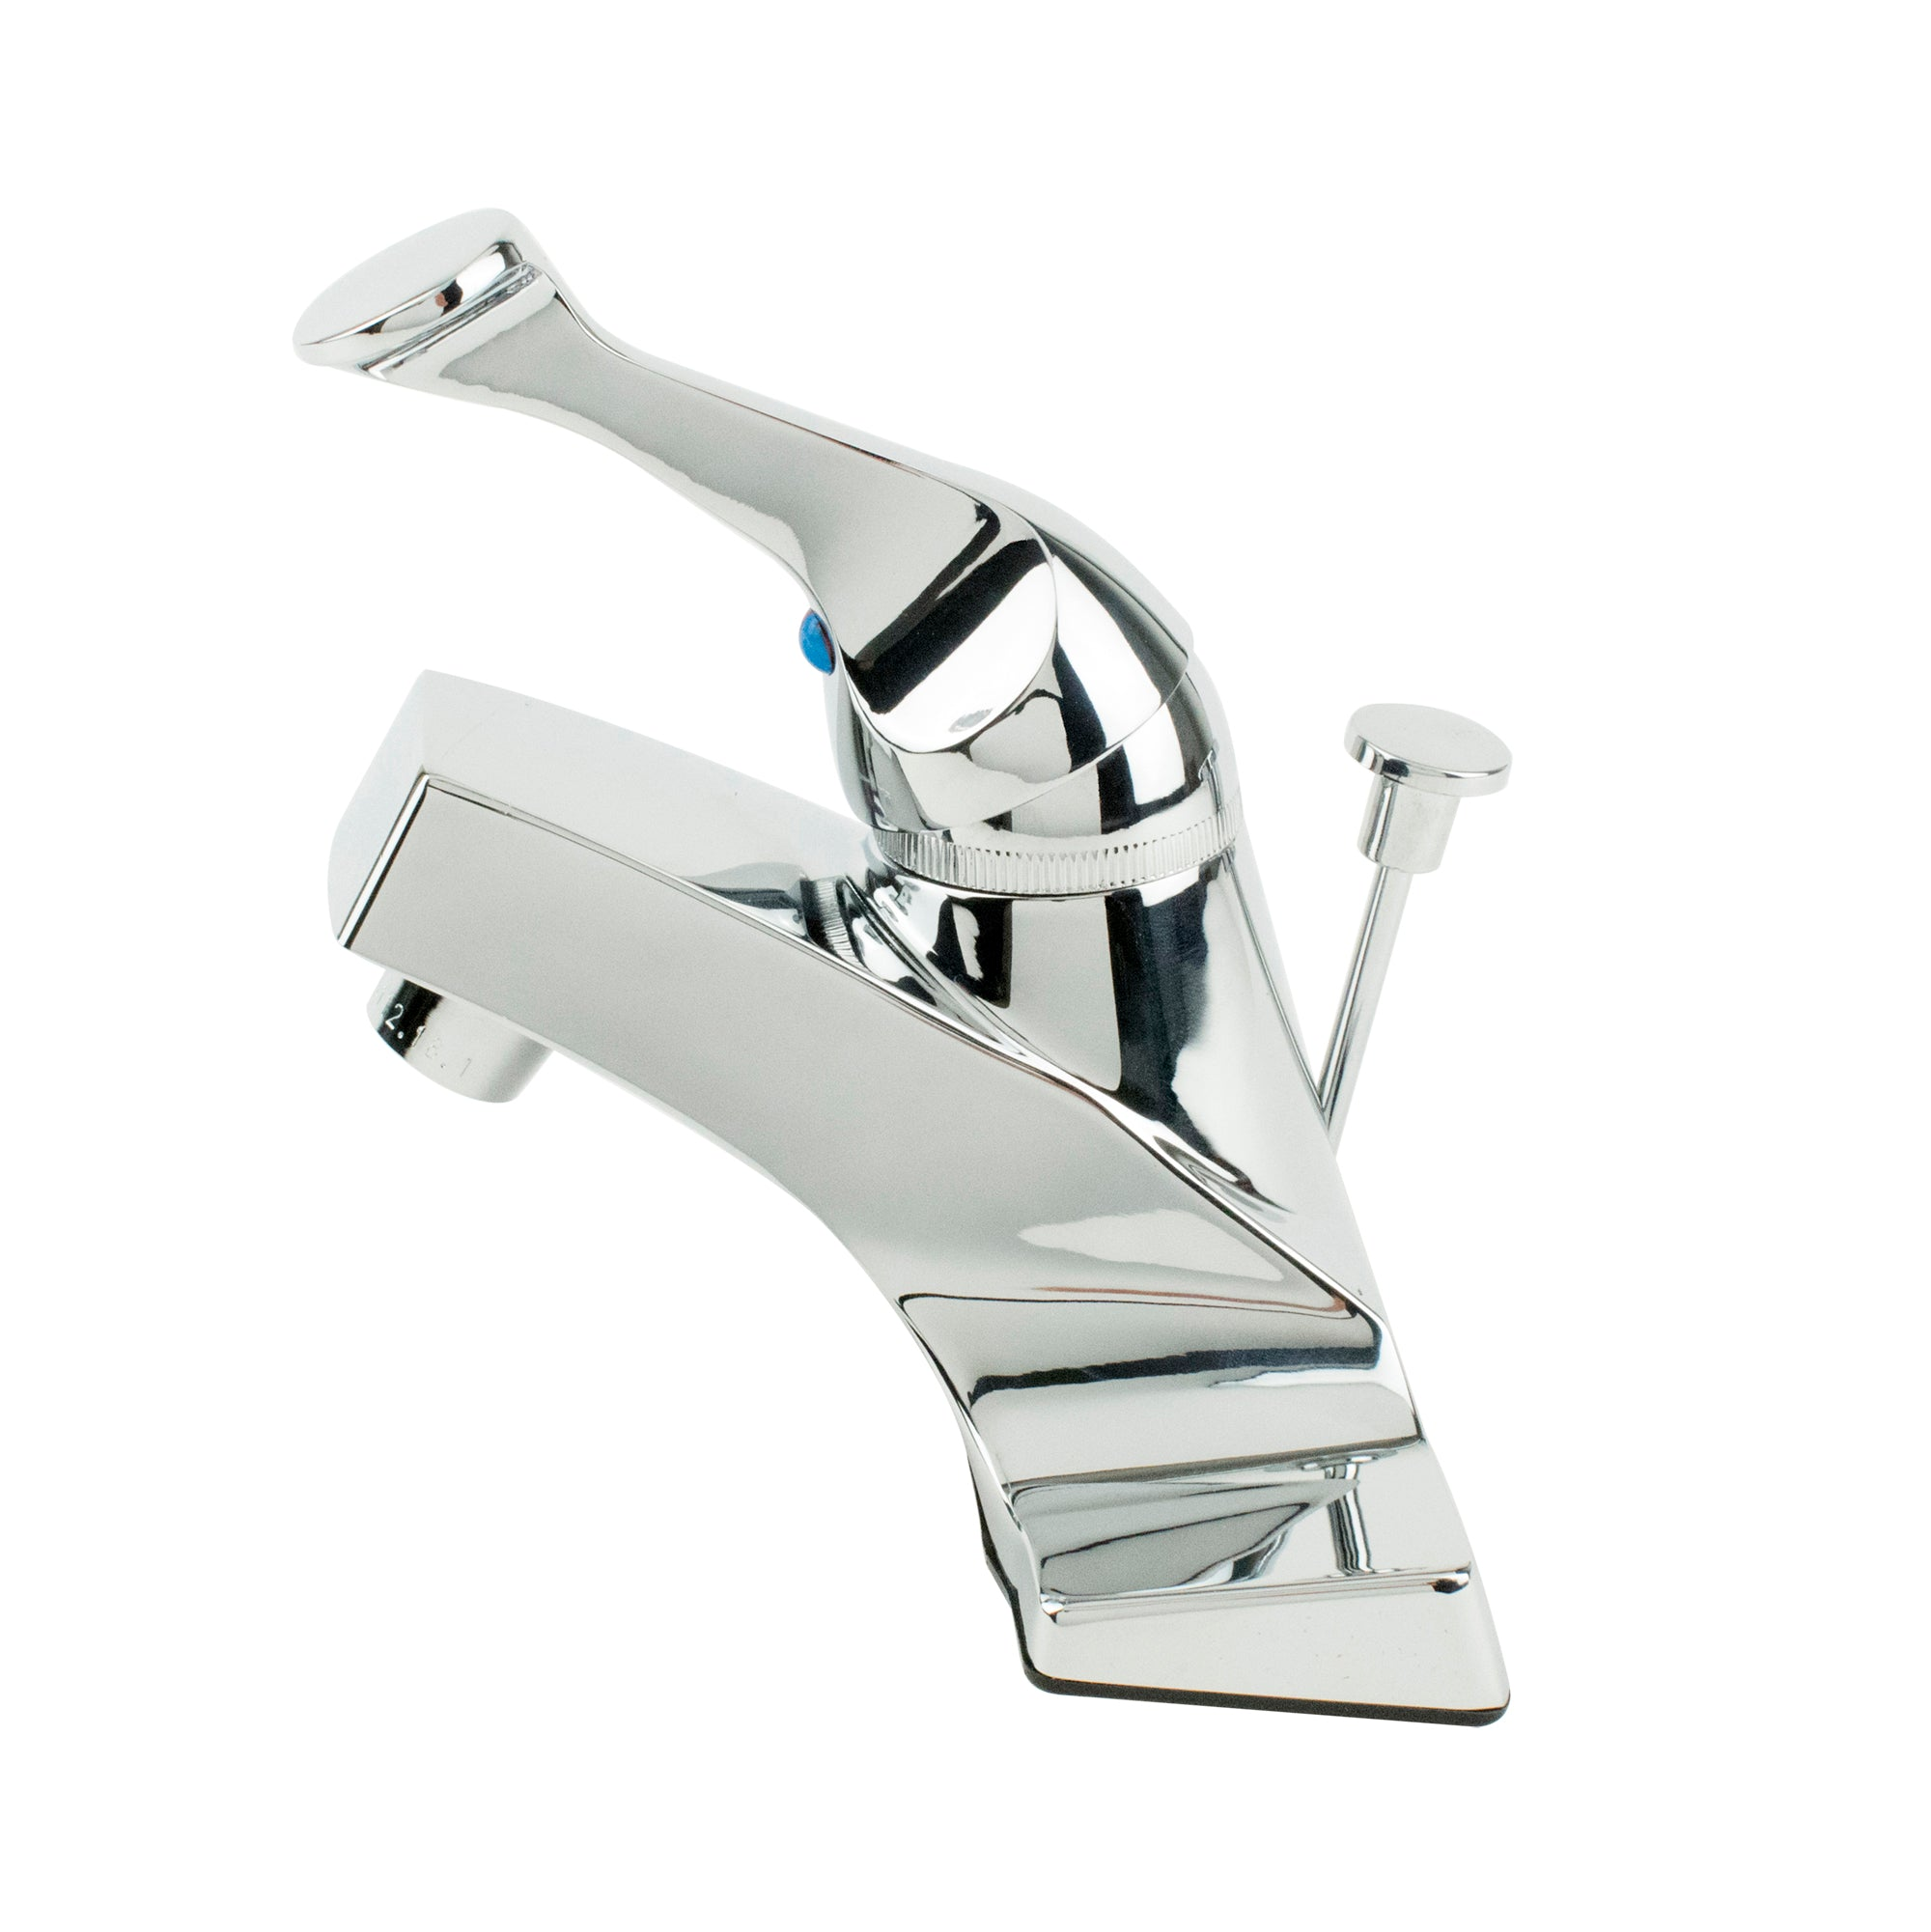 Timeless Chrome Bathroom Faucet - The Overstock Club